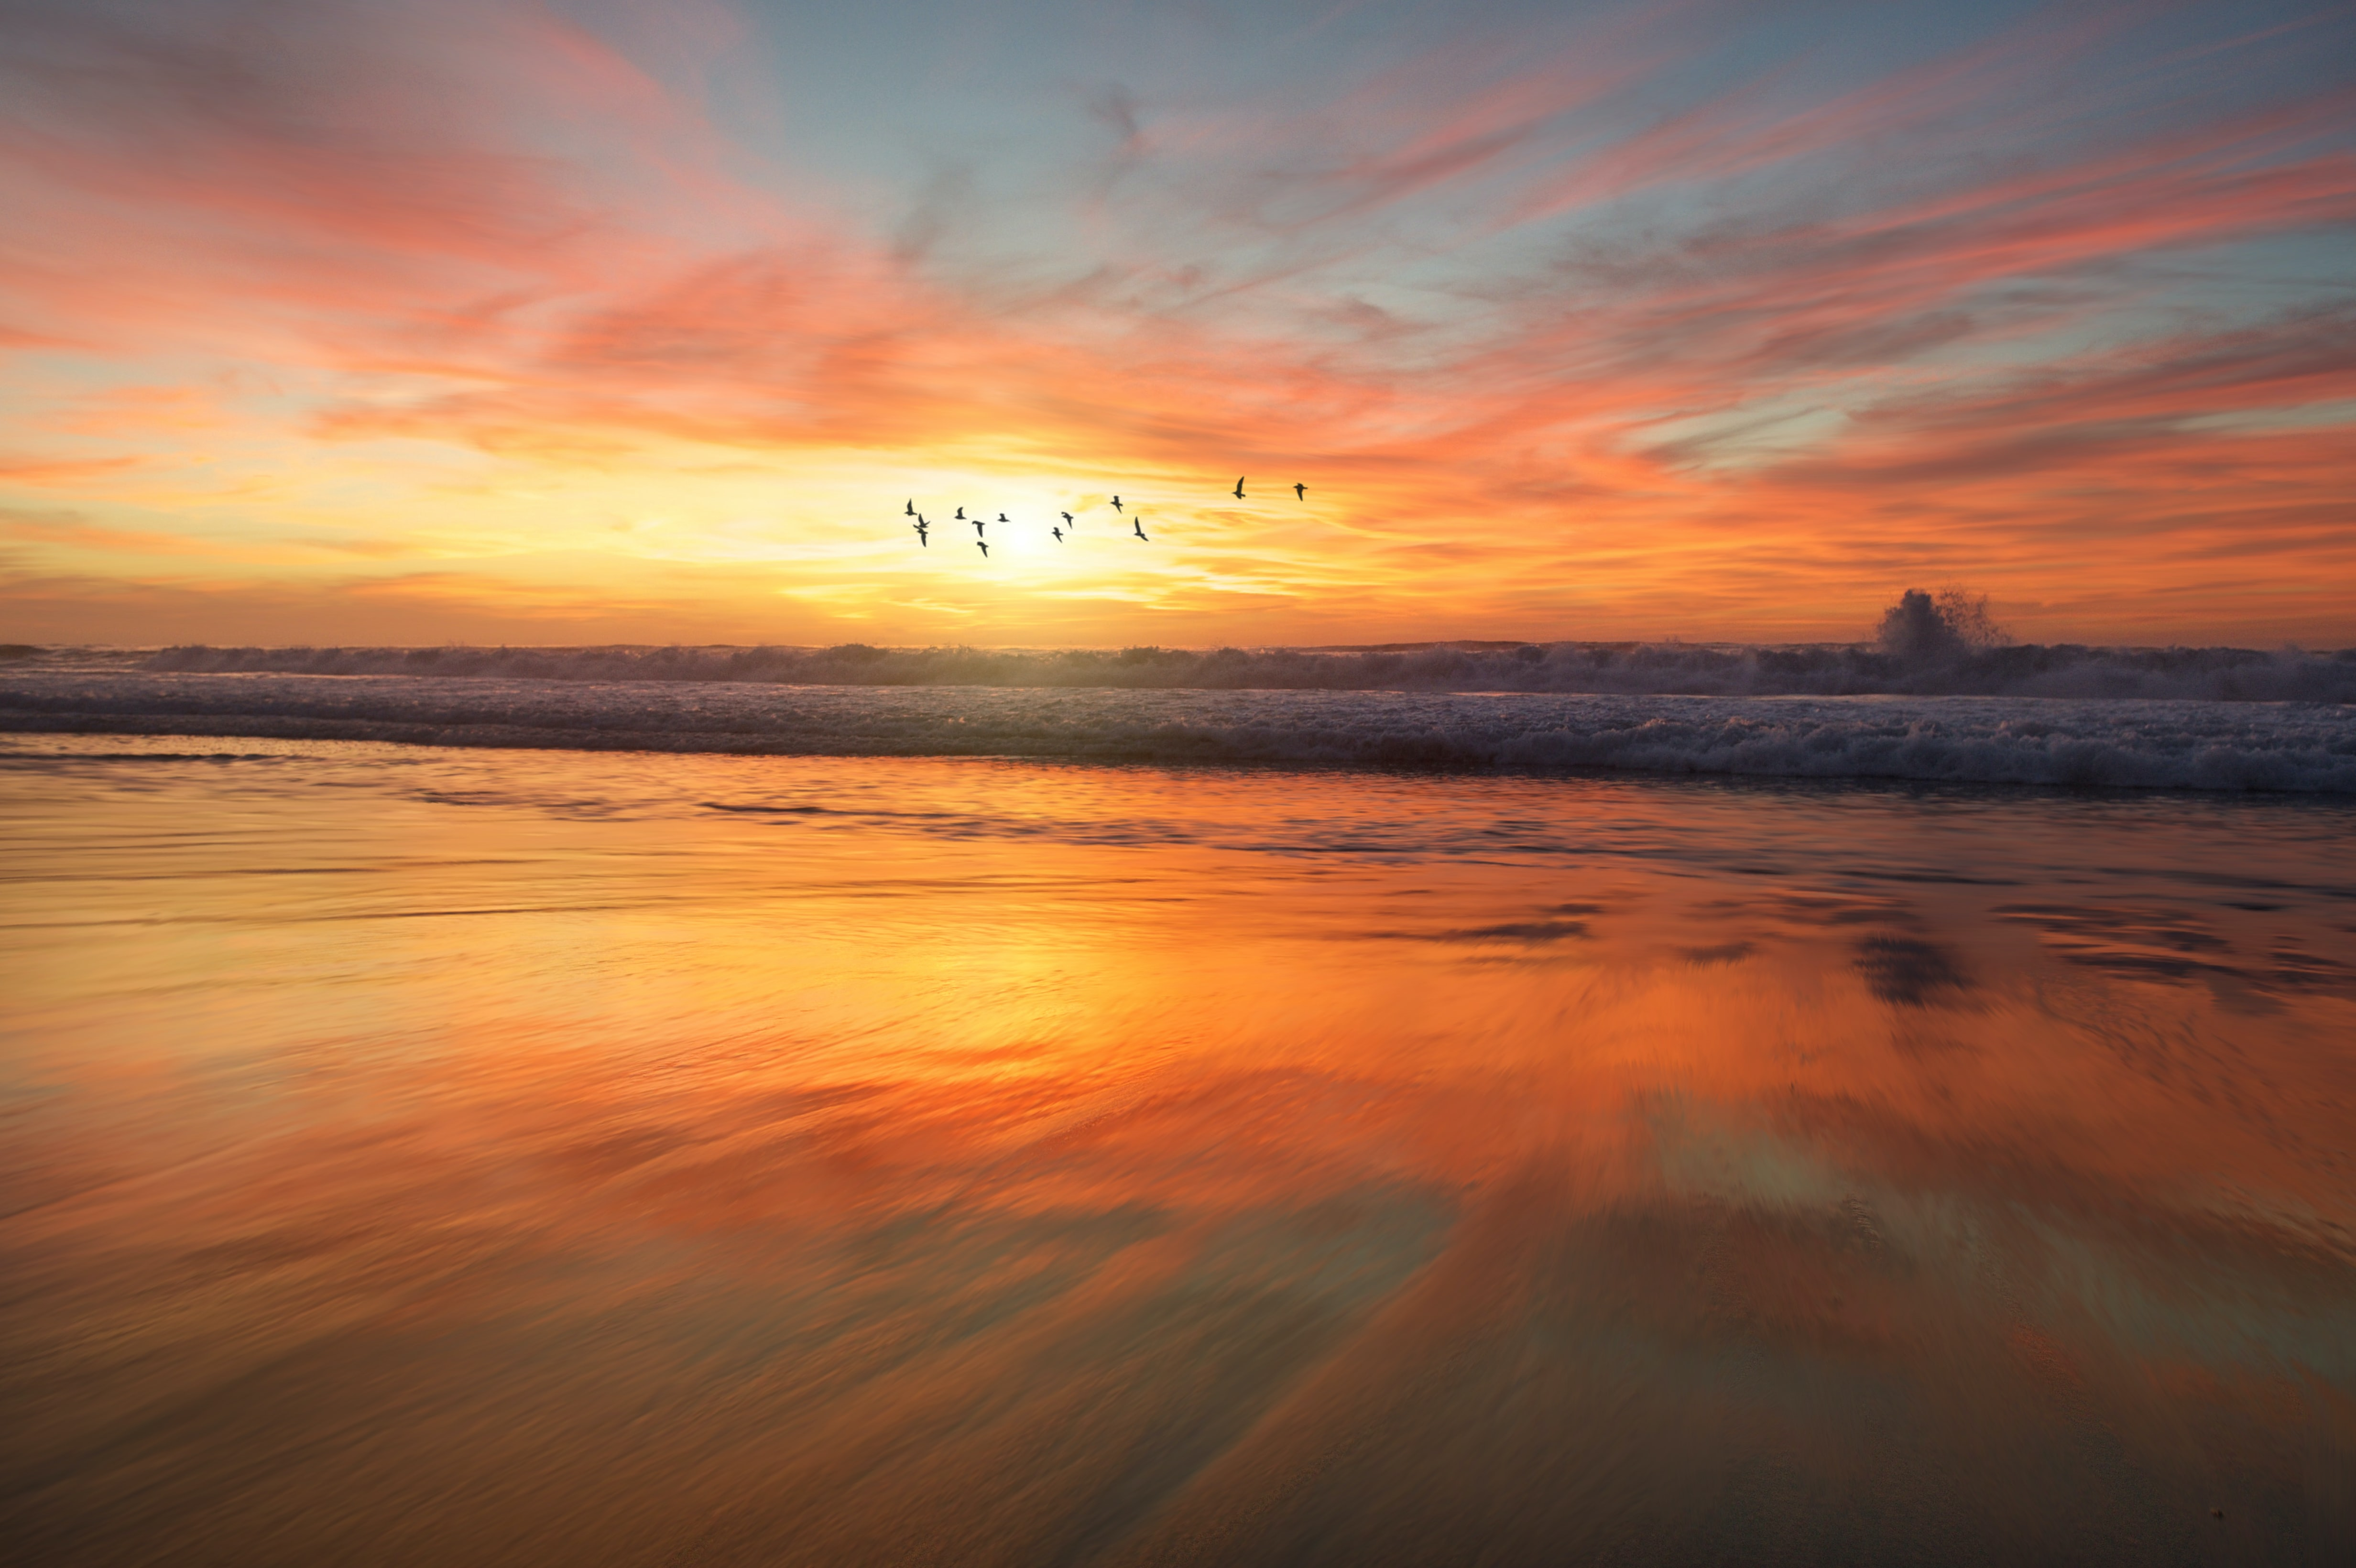 Birds flying over the high tidal waves in San Diego during sunrise